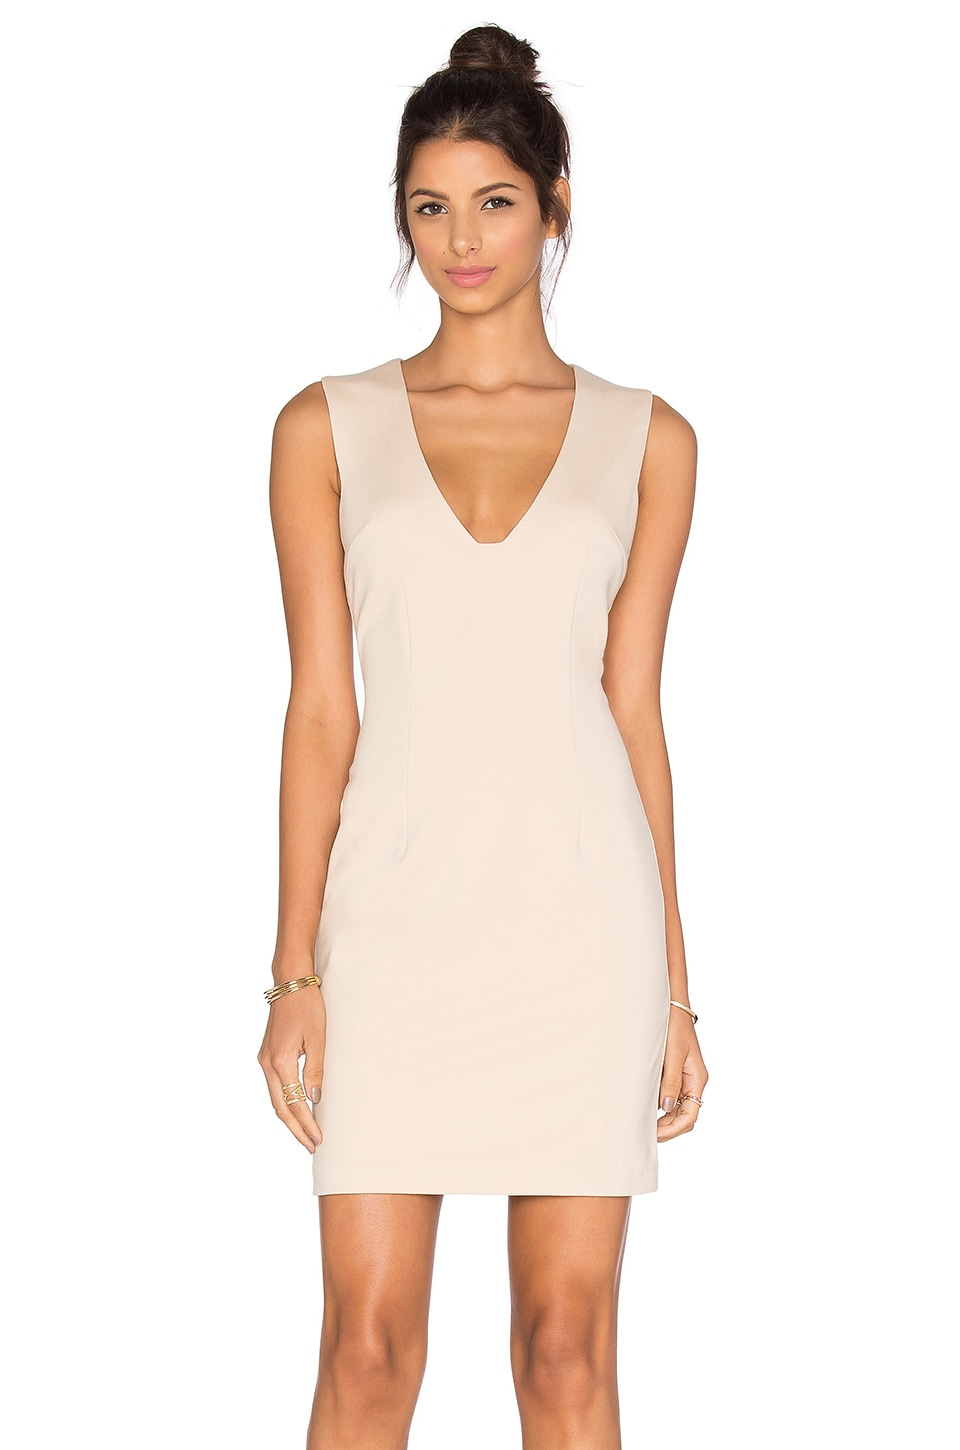 Plunging Neckline Mini Dress